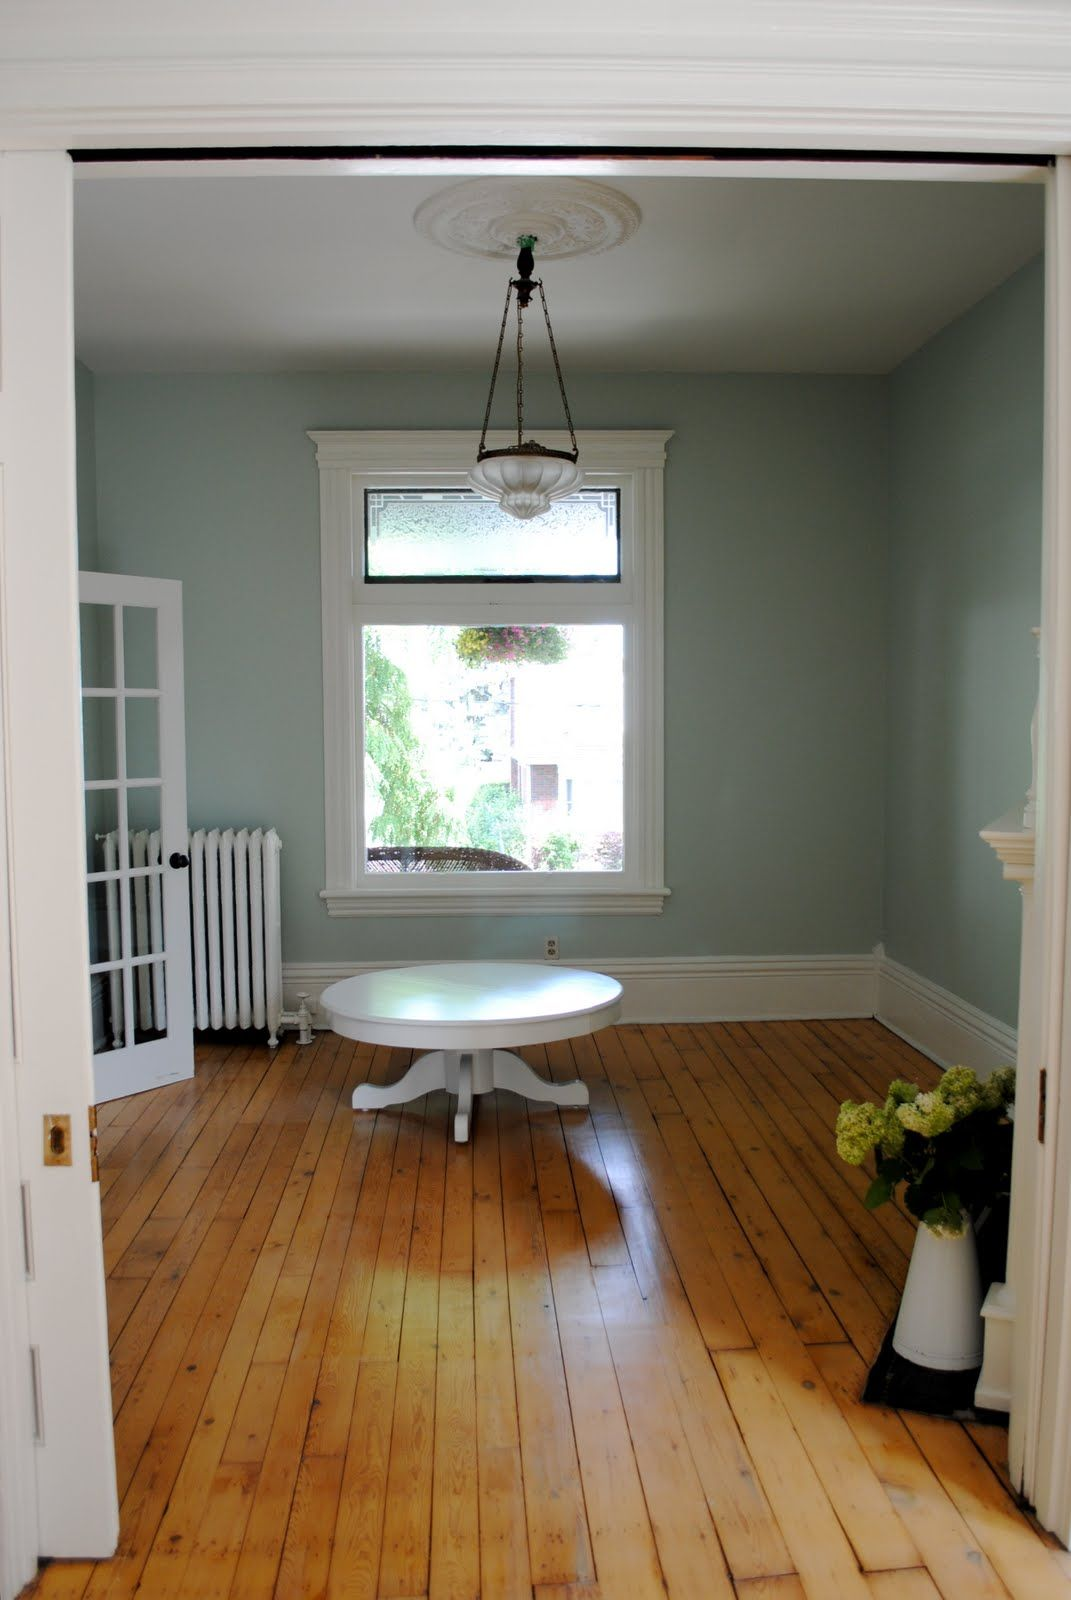 I like the colors on the walls and the way it accents the flooring nicely paint color valspar clothesline